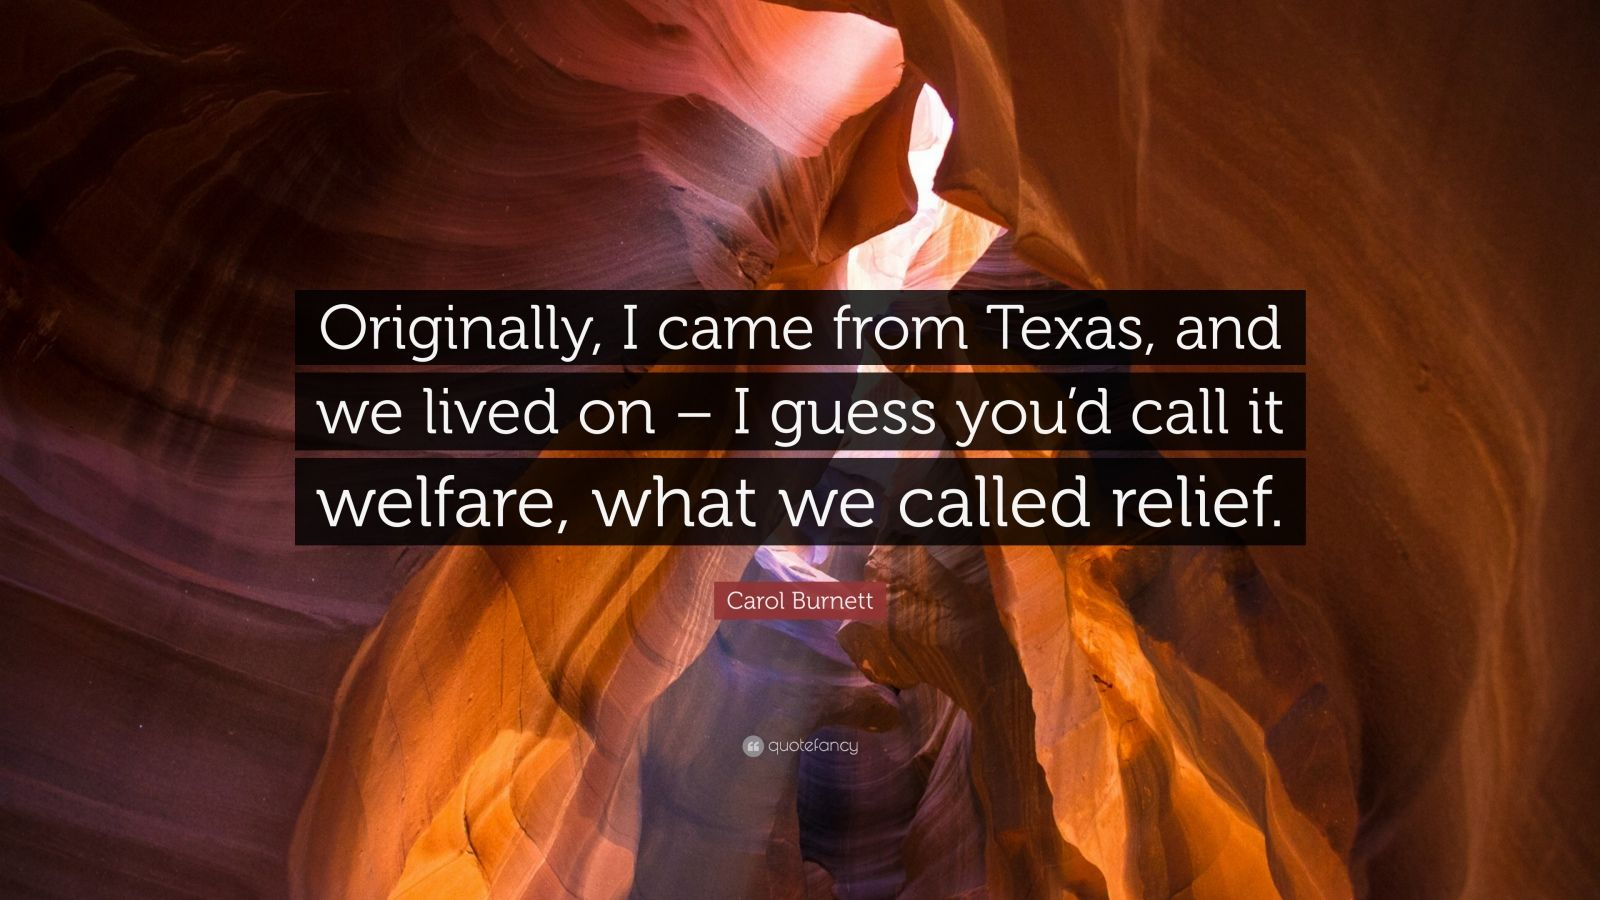 """Carol Burnett Quote: """"Originally, I came from Texas, and we lived on – I guess you'd call it welfare, what we called relief."""""""